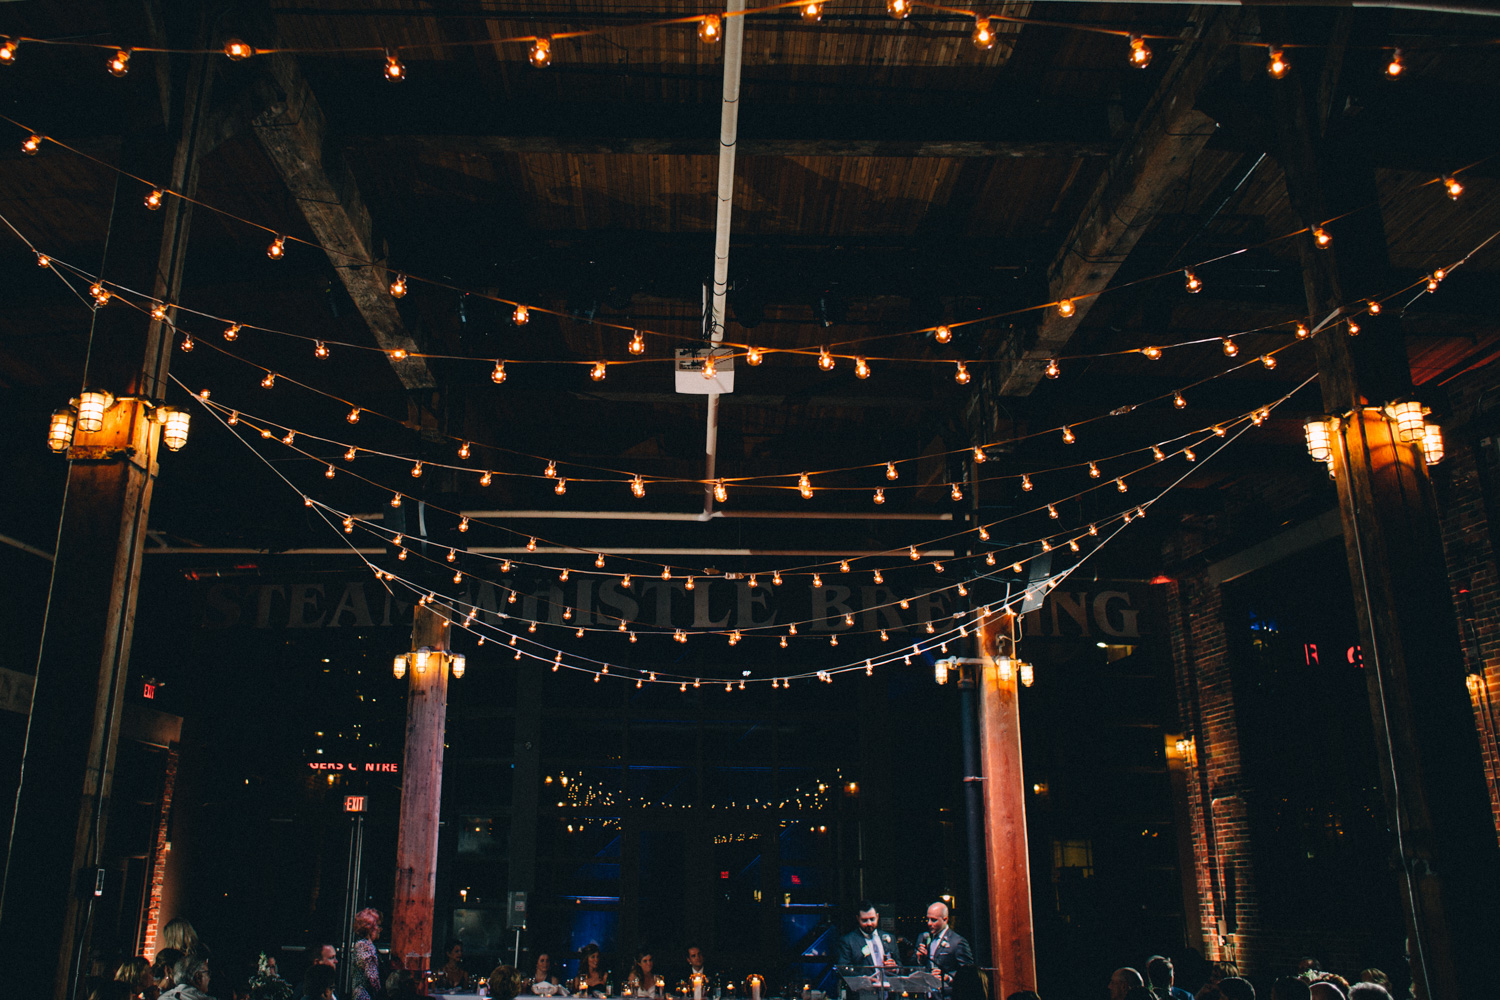 steam-whistle-brewery-wedding-photos-toronto-wedding-photography-by-sam-wong-of-artanis-collective_01055